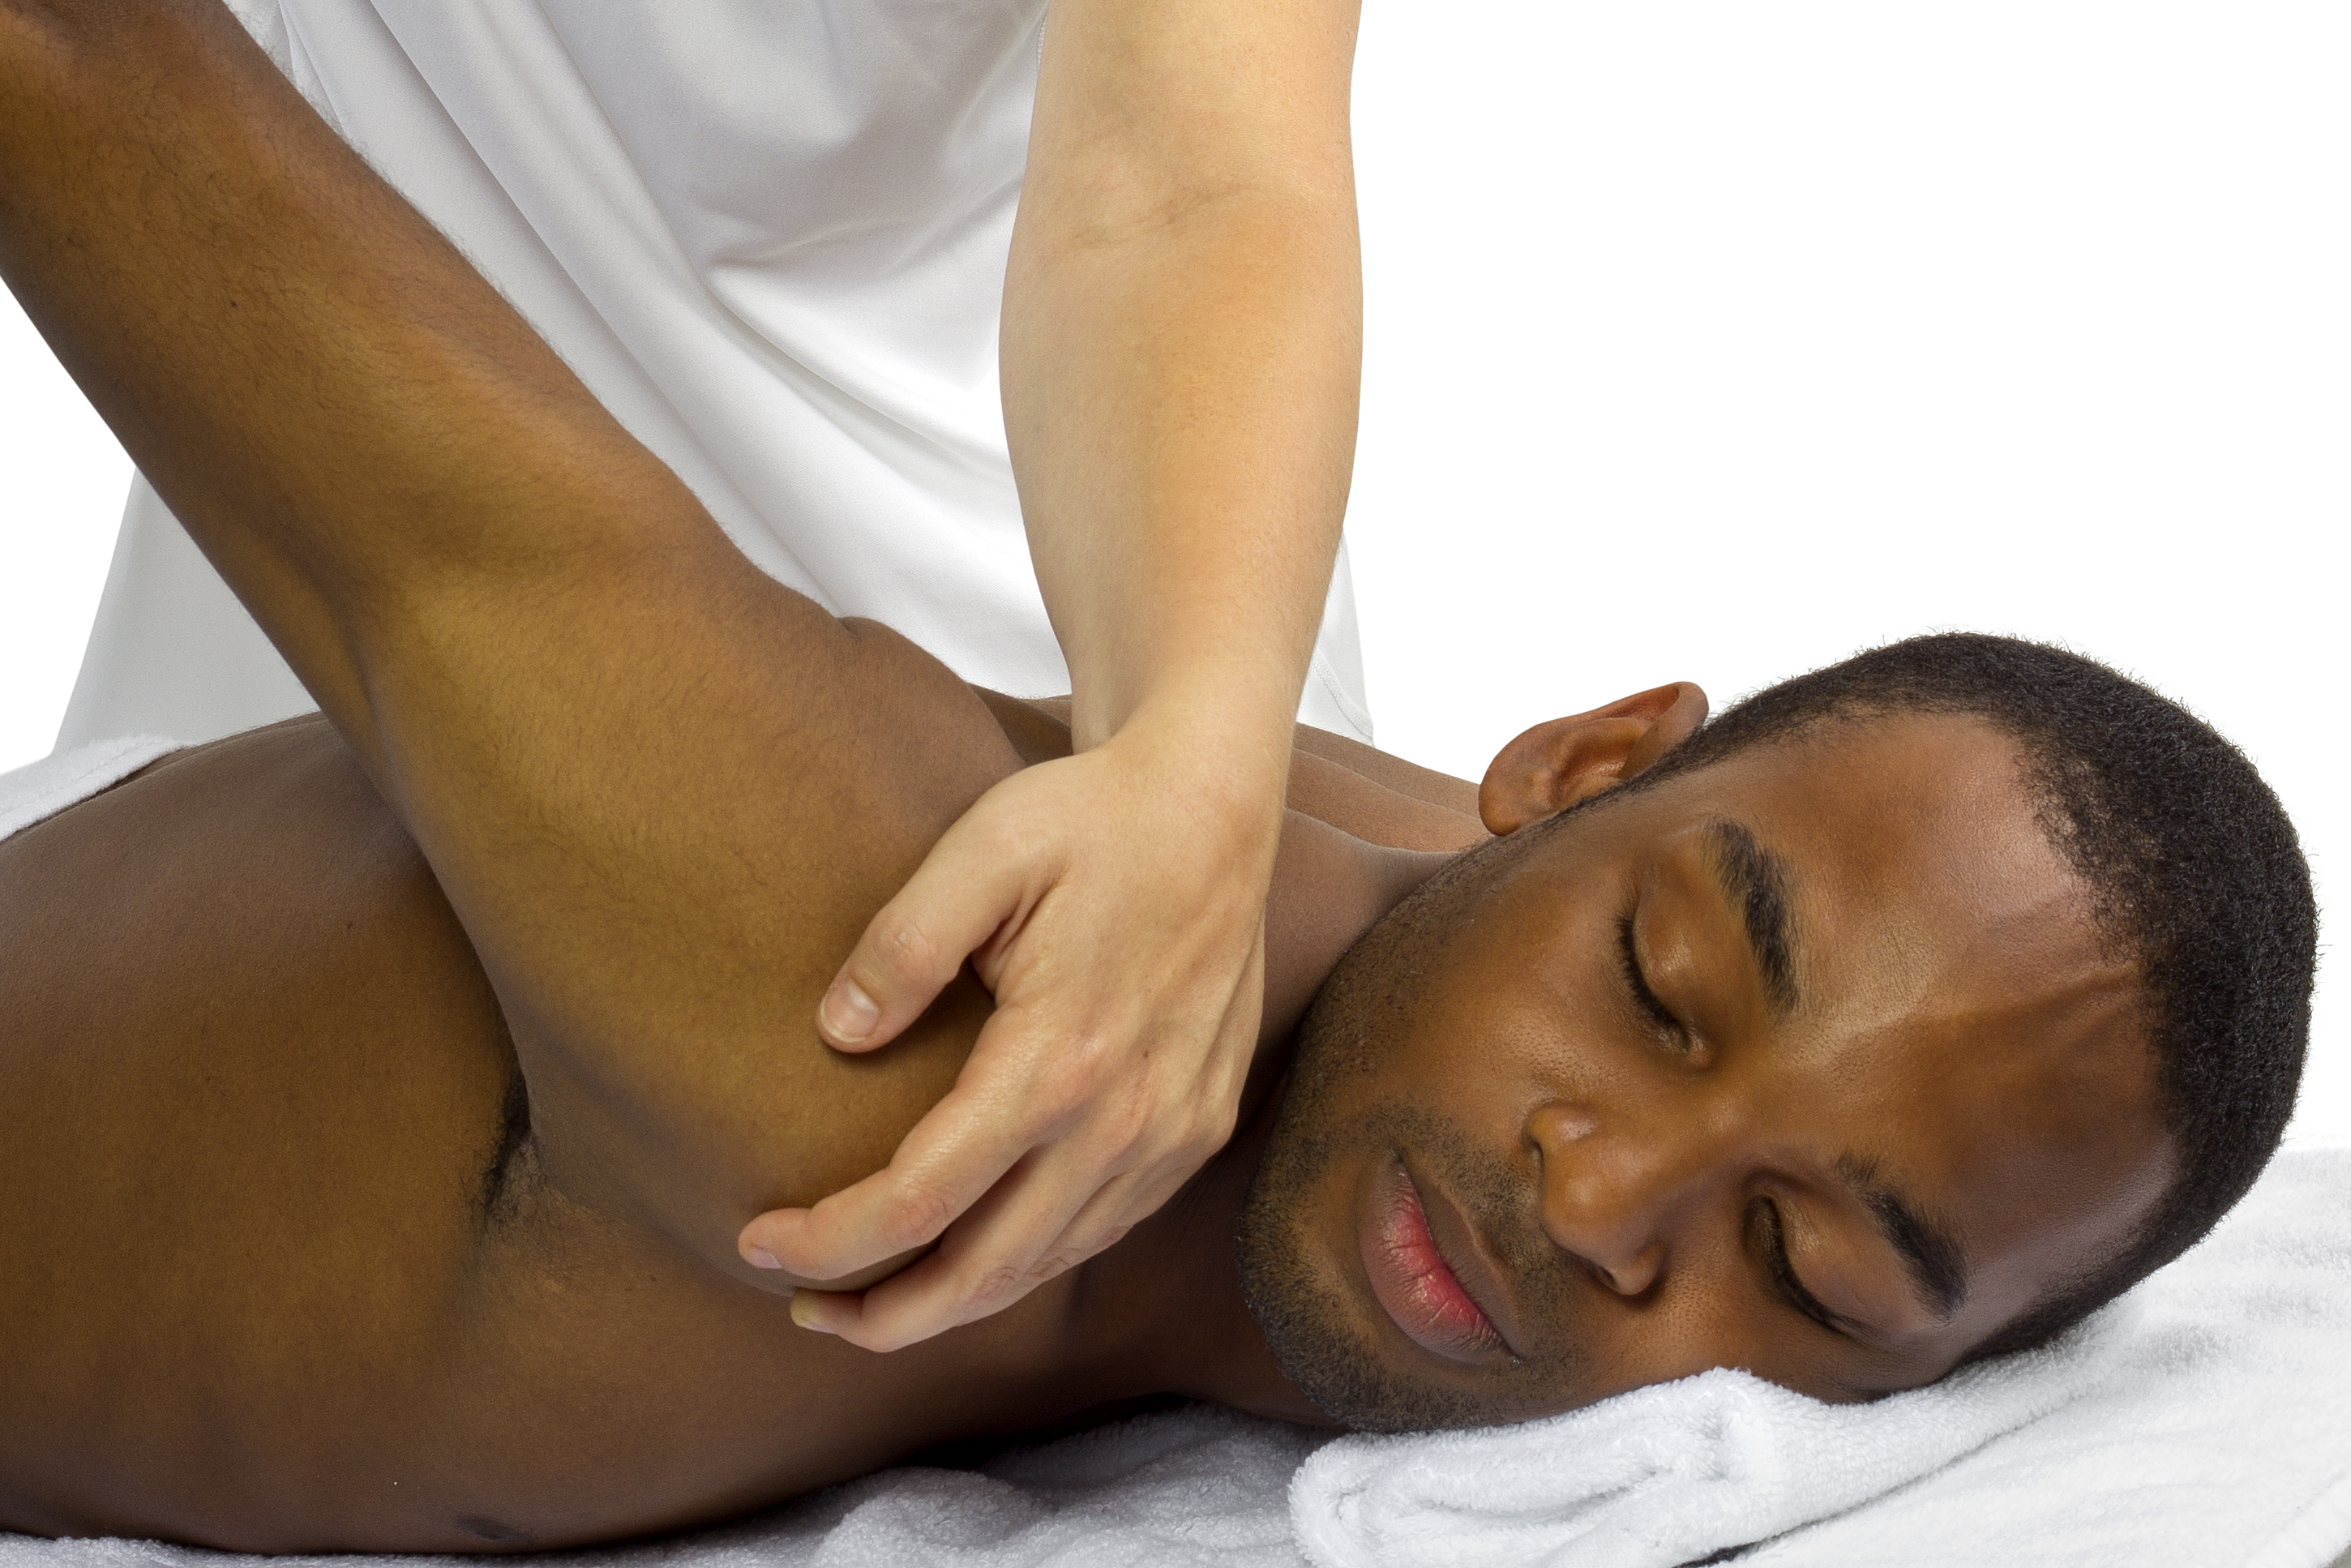 northville_plymouth_chiropractor_massage_10.jpg